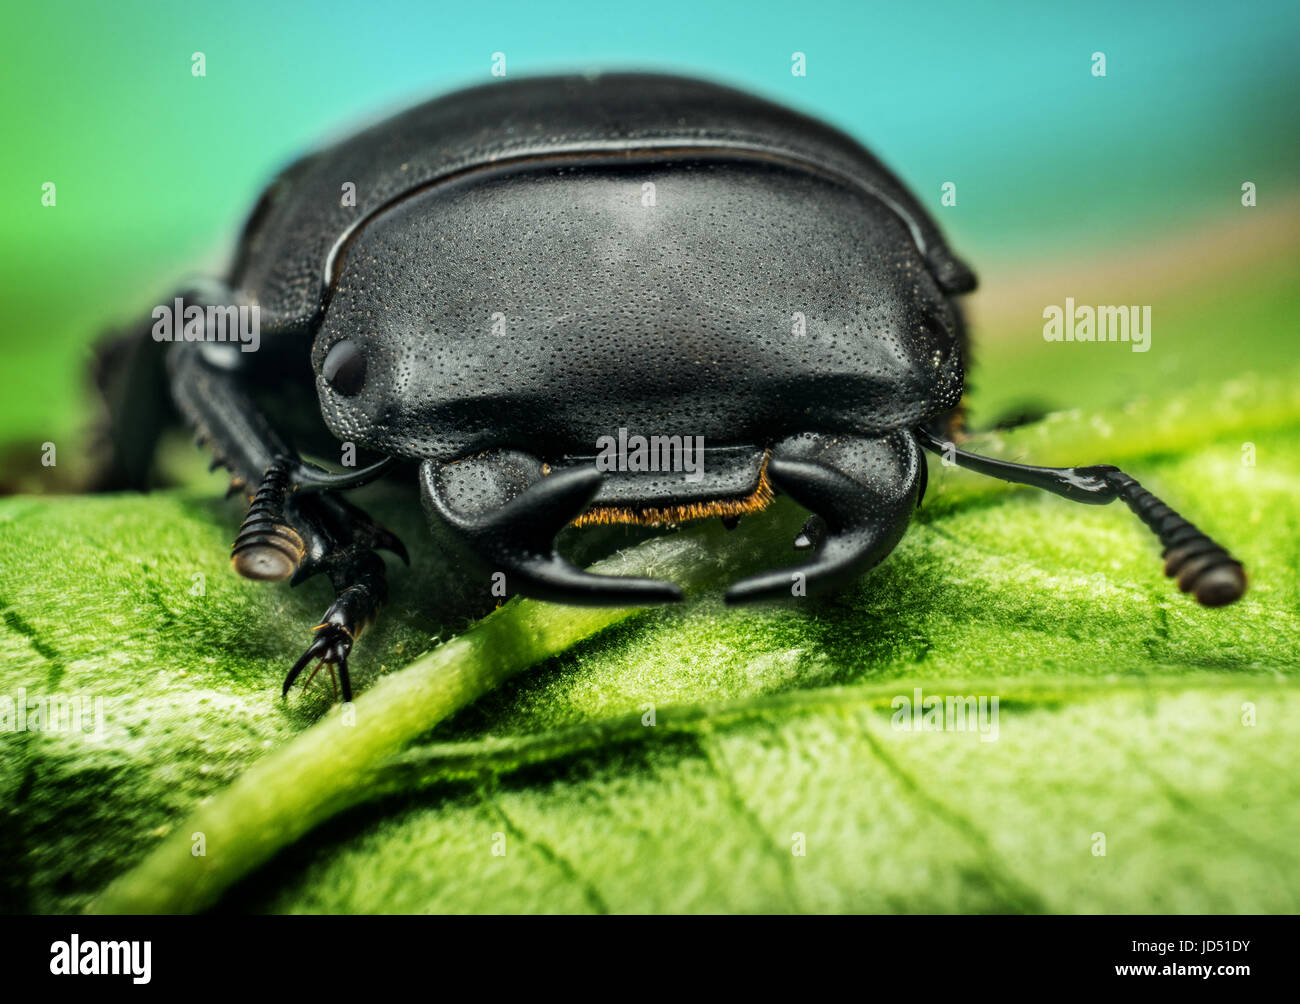 Young stag beetle (Lucanus cervus) on green leaf Stock Photo